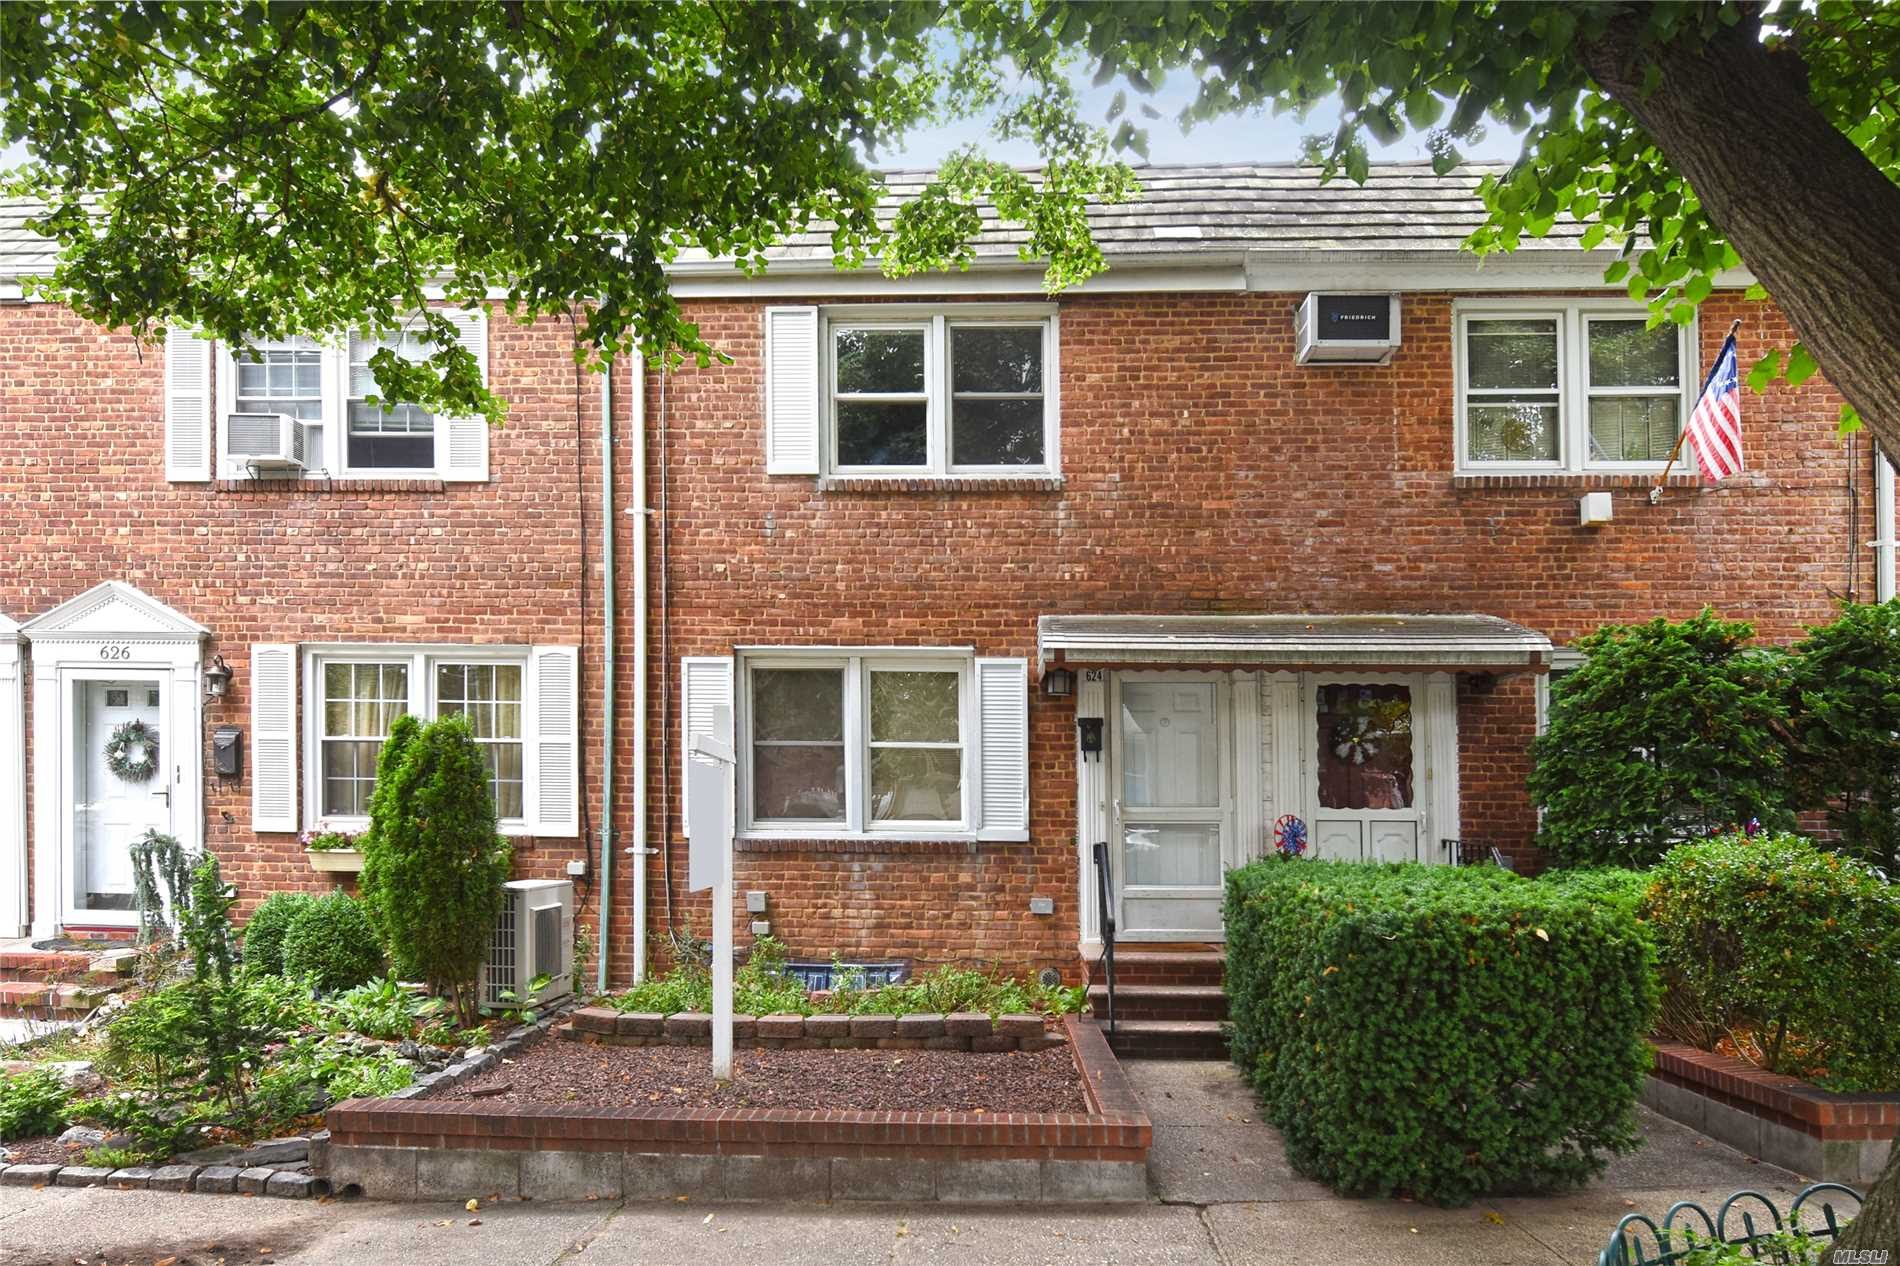 Just Arrived - Affordable Opportunity To Own A House In Beechhurst. This Attached Brick Colonial Has A Newer Kitchen And Many Upgrades Throughout. Convenient To Shopping And Transportation. Sd 25: P.S. 193, J.H.S. 194, Bayside H.S.